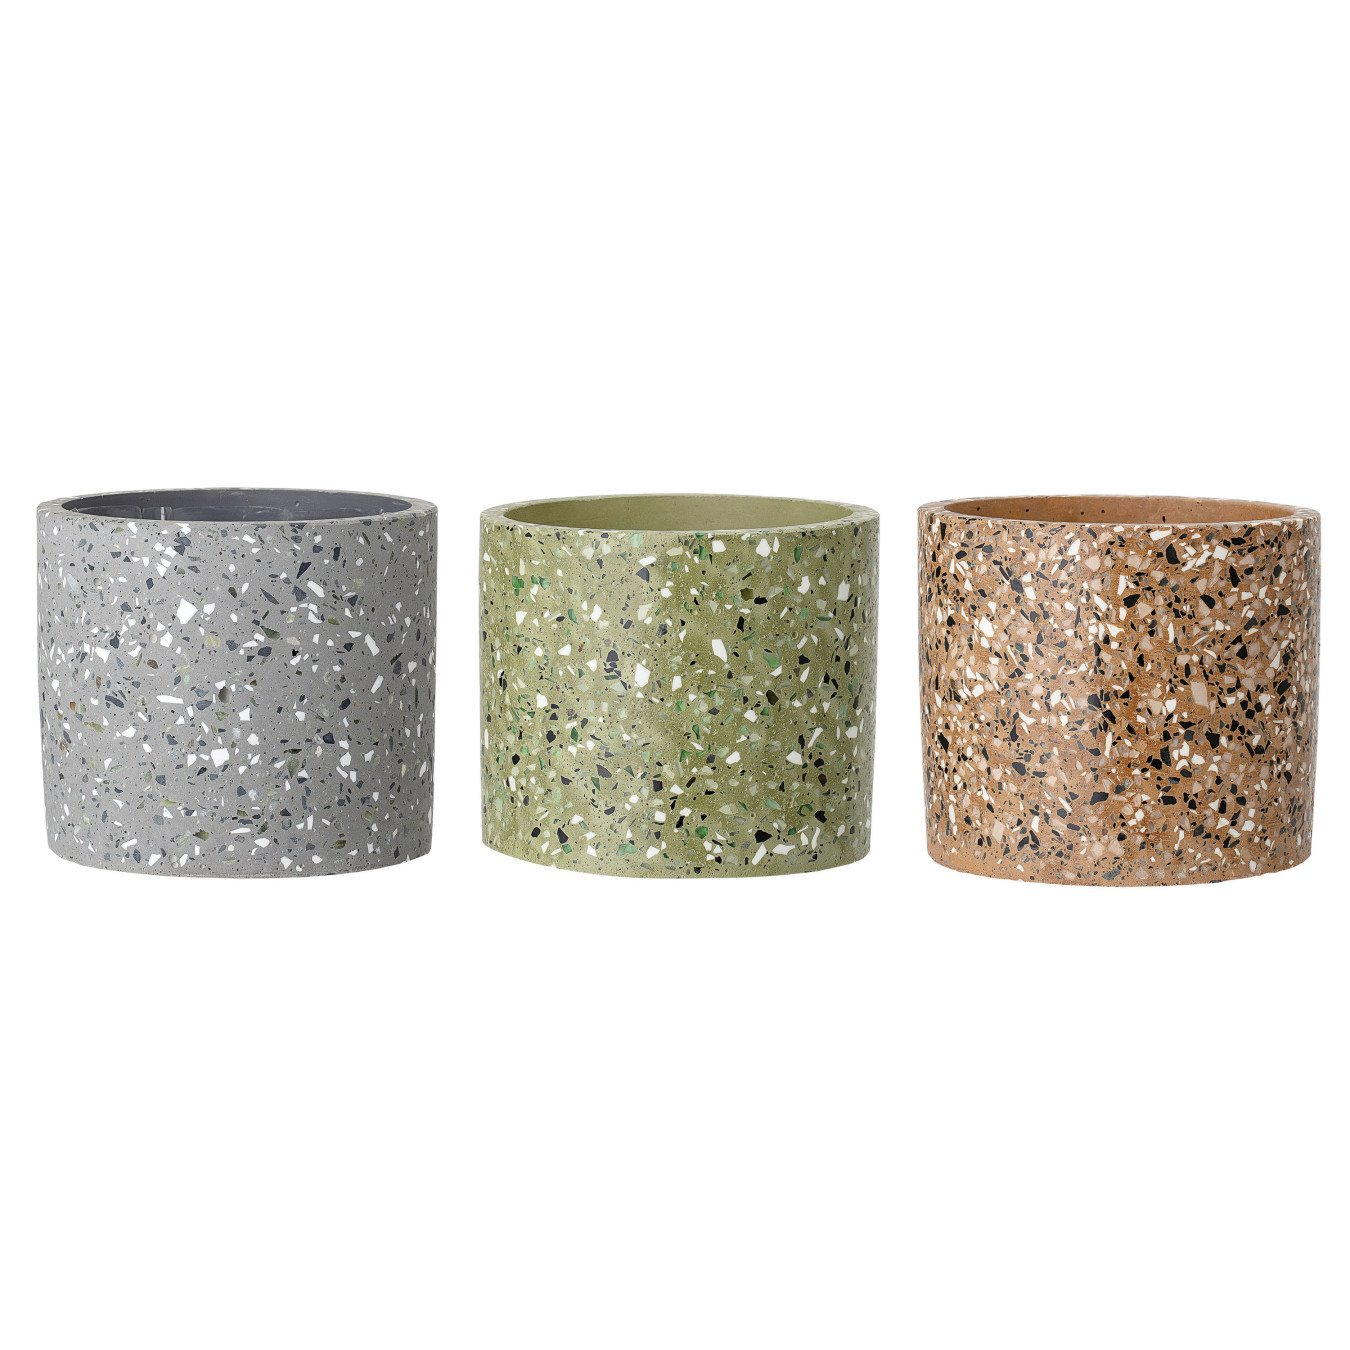 Round Speckled Cement Flower Pot (Set of 3 Colors)